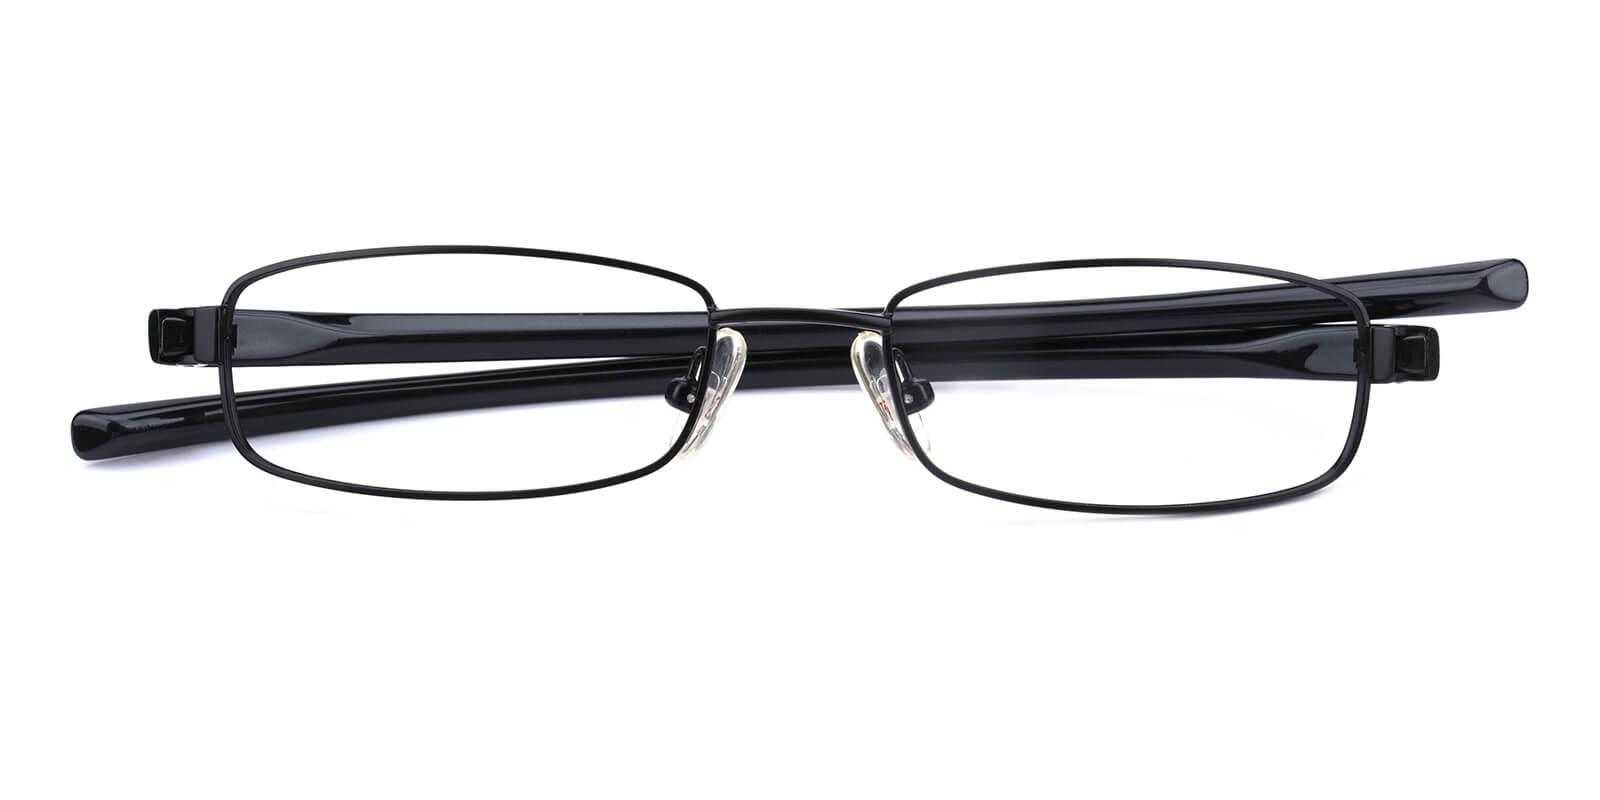 Slender-Black-Rectangle-Metal-Eyeglasses-detail